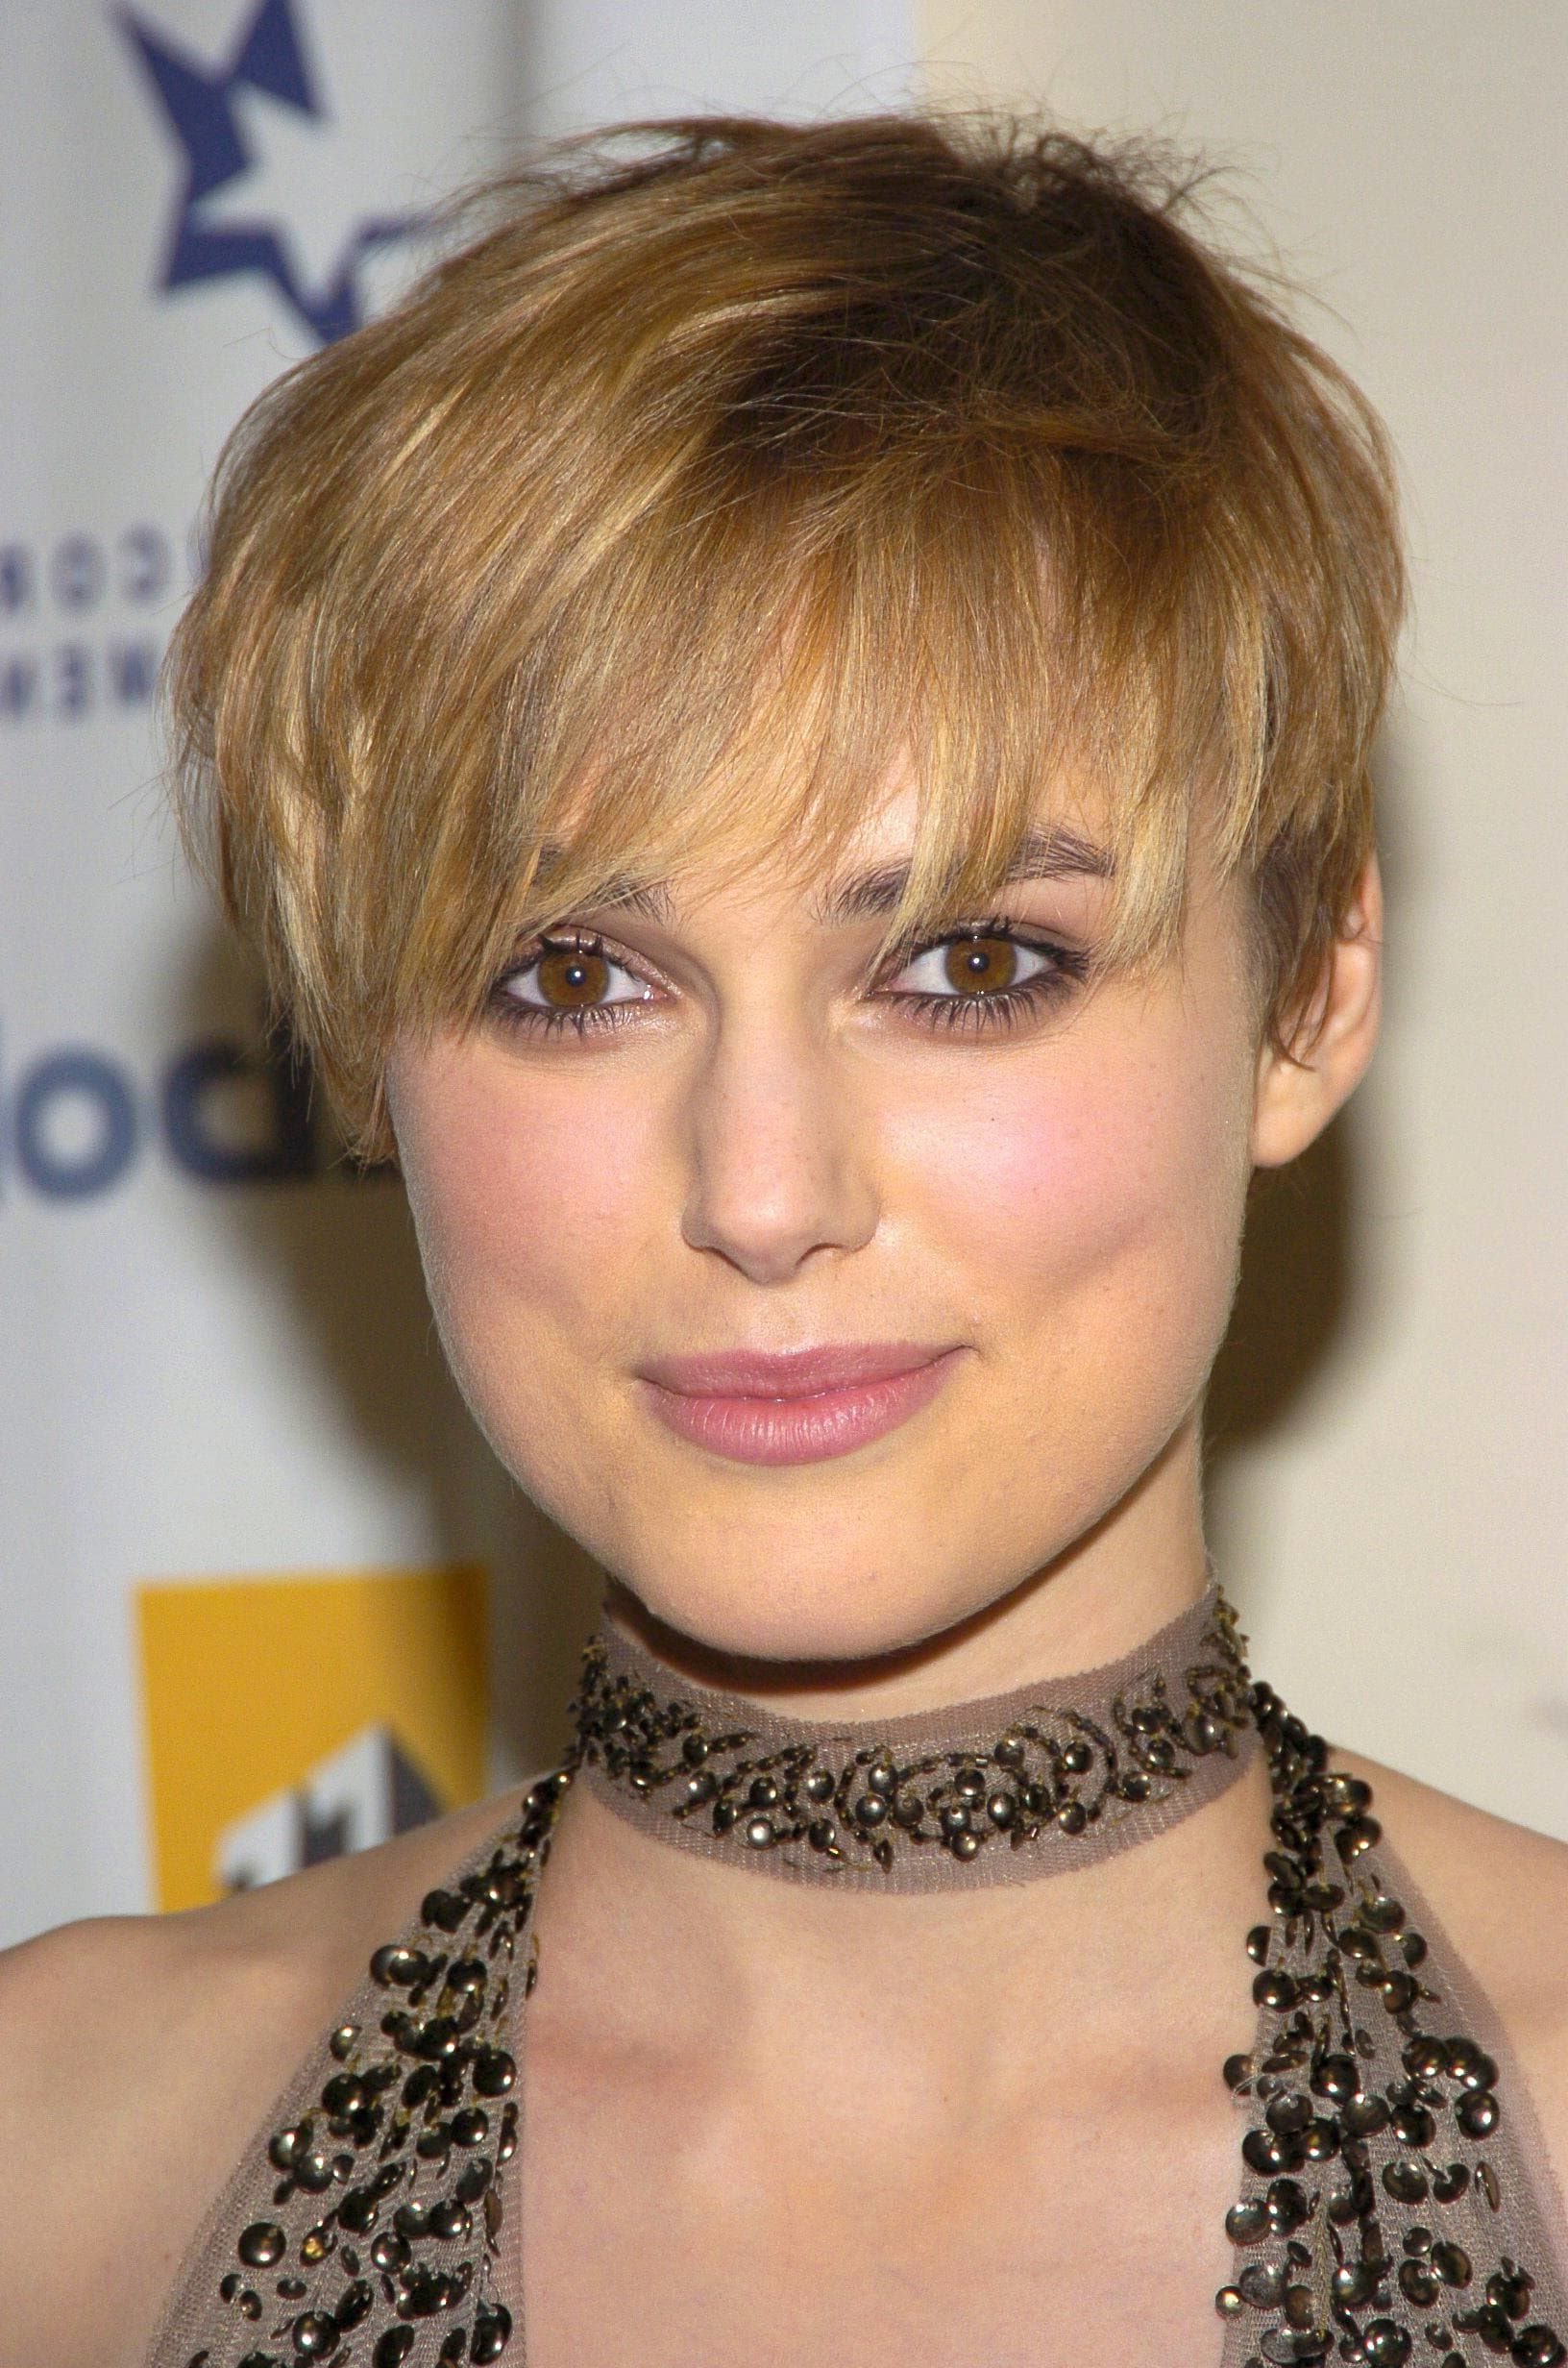 30 Pretty Pixie Cuts Styles Adoreda List Celebrities | All Inside High Shine Sleek Silver Pixie Bob Haircuts (View 14 of 20)